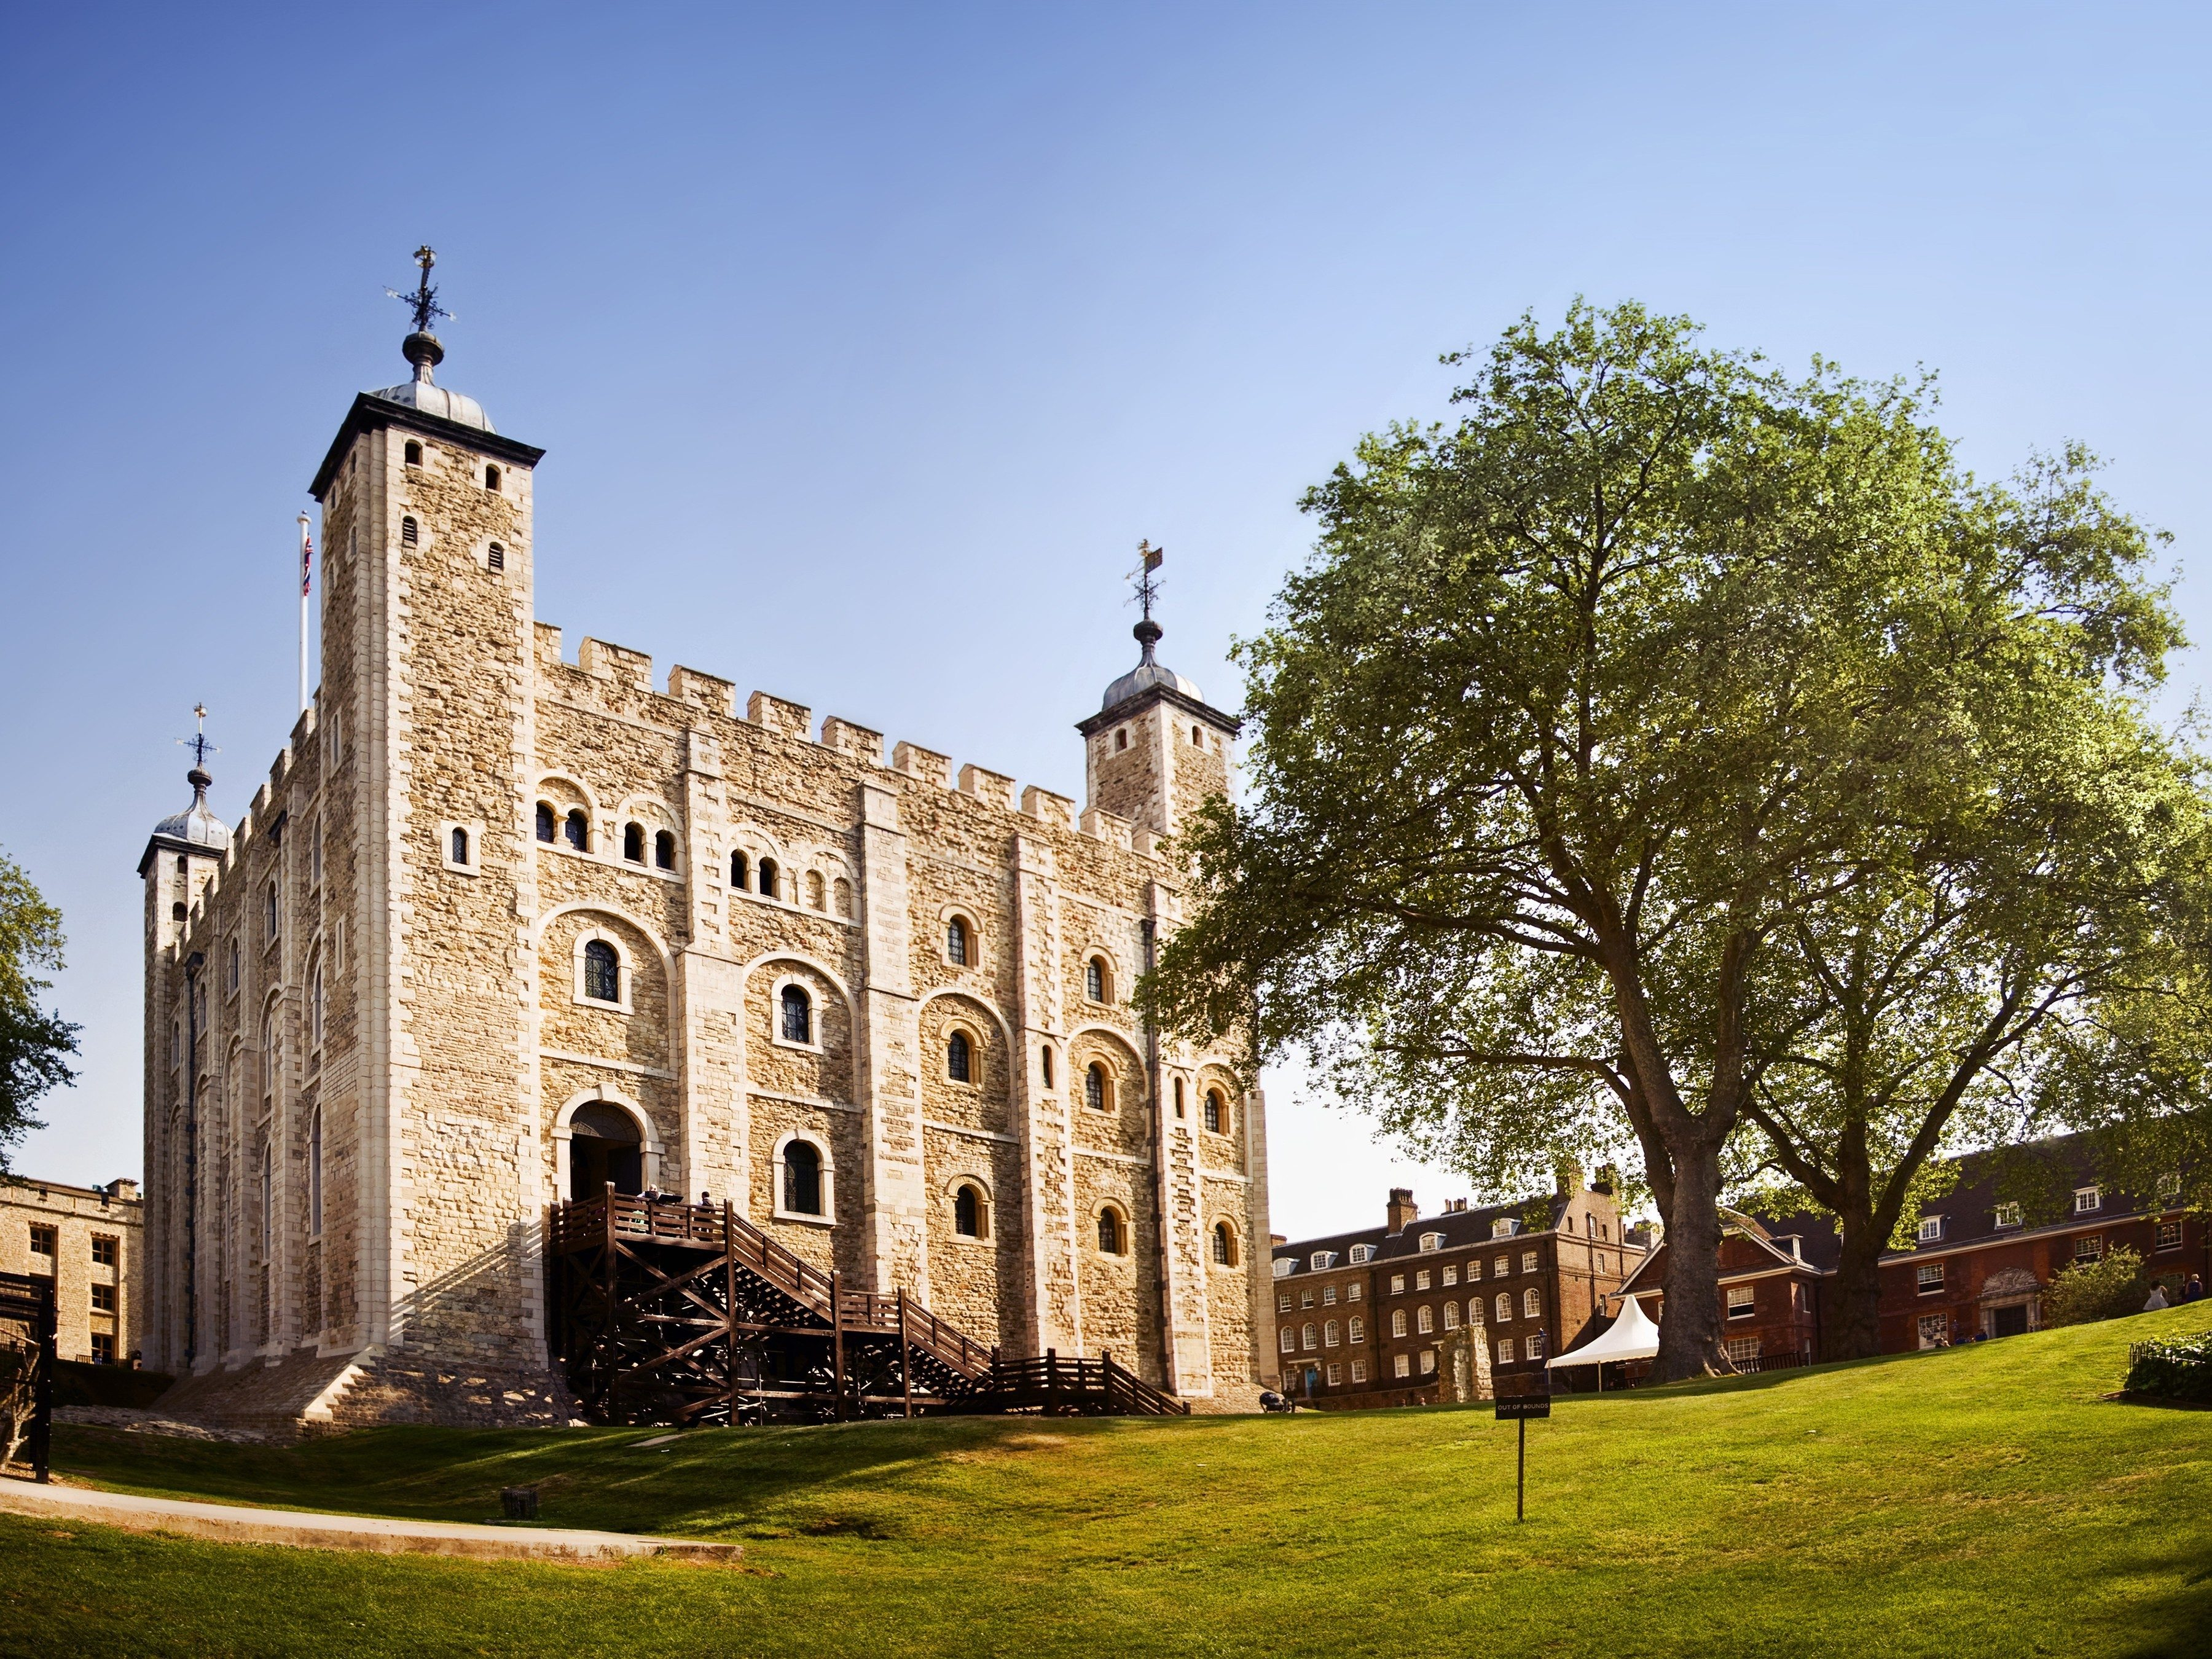 London attractions: Tower of London